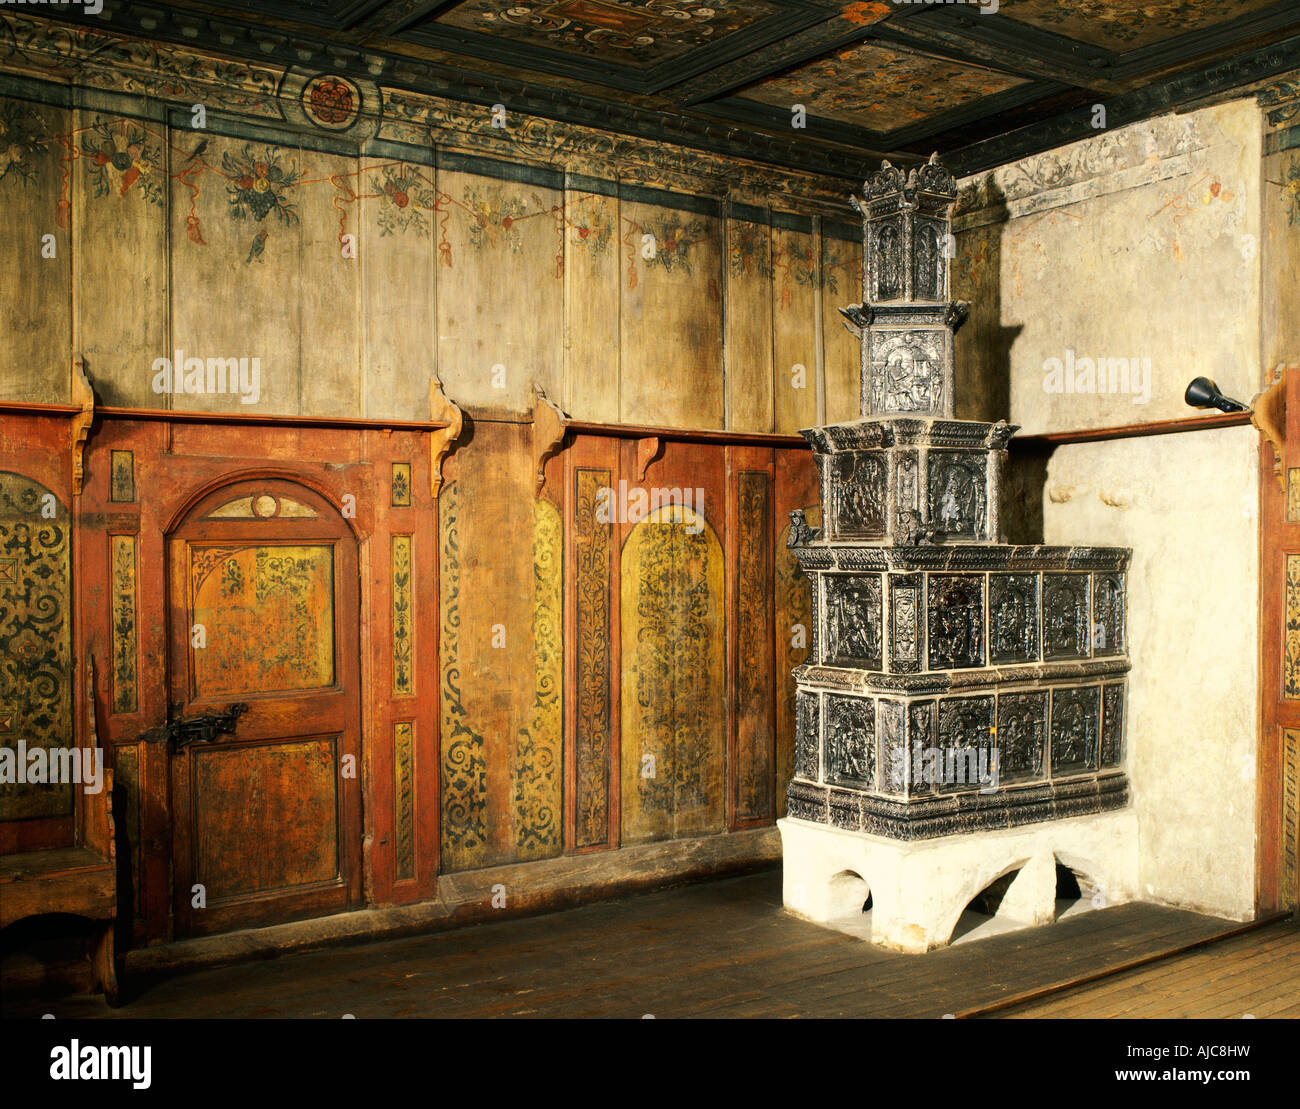 martin luther house wittenberg stockfotos martin luther house wittenberg bilder alamy. Black Bedroom Furniture Sets. Home Design Ideas